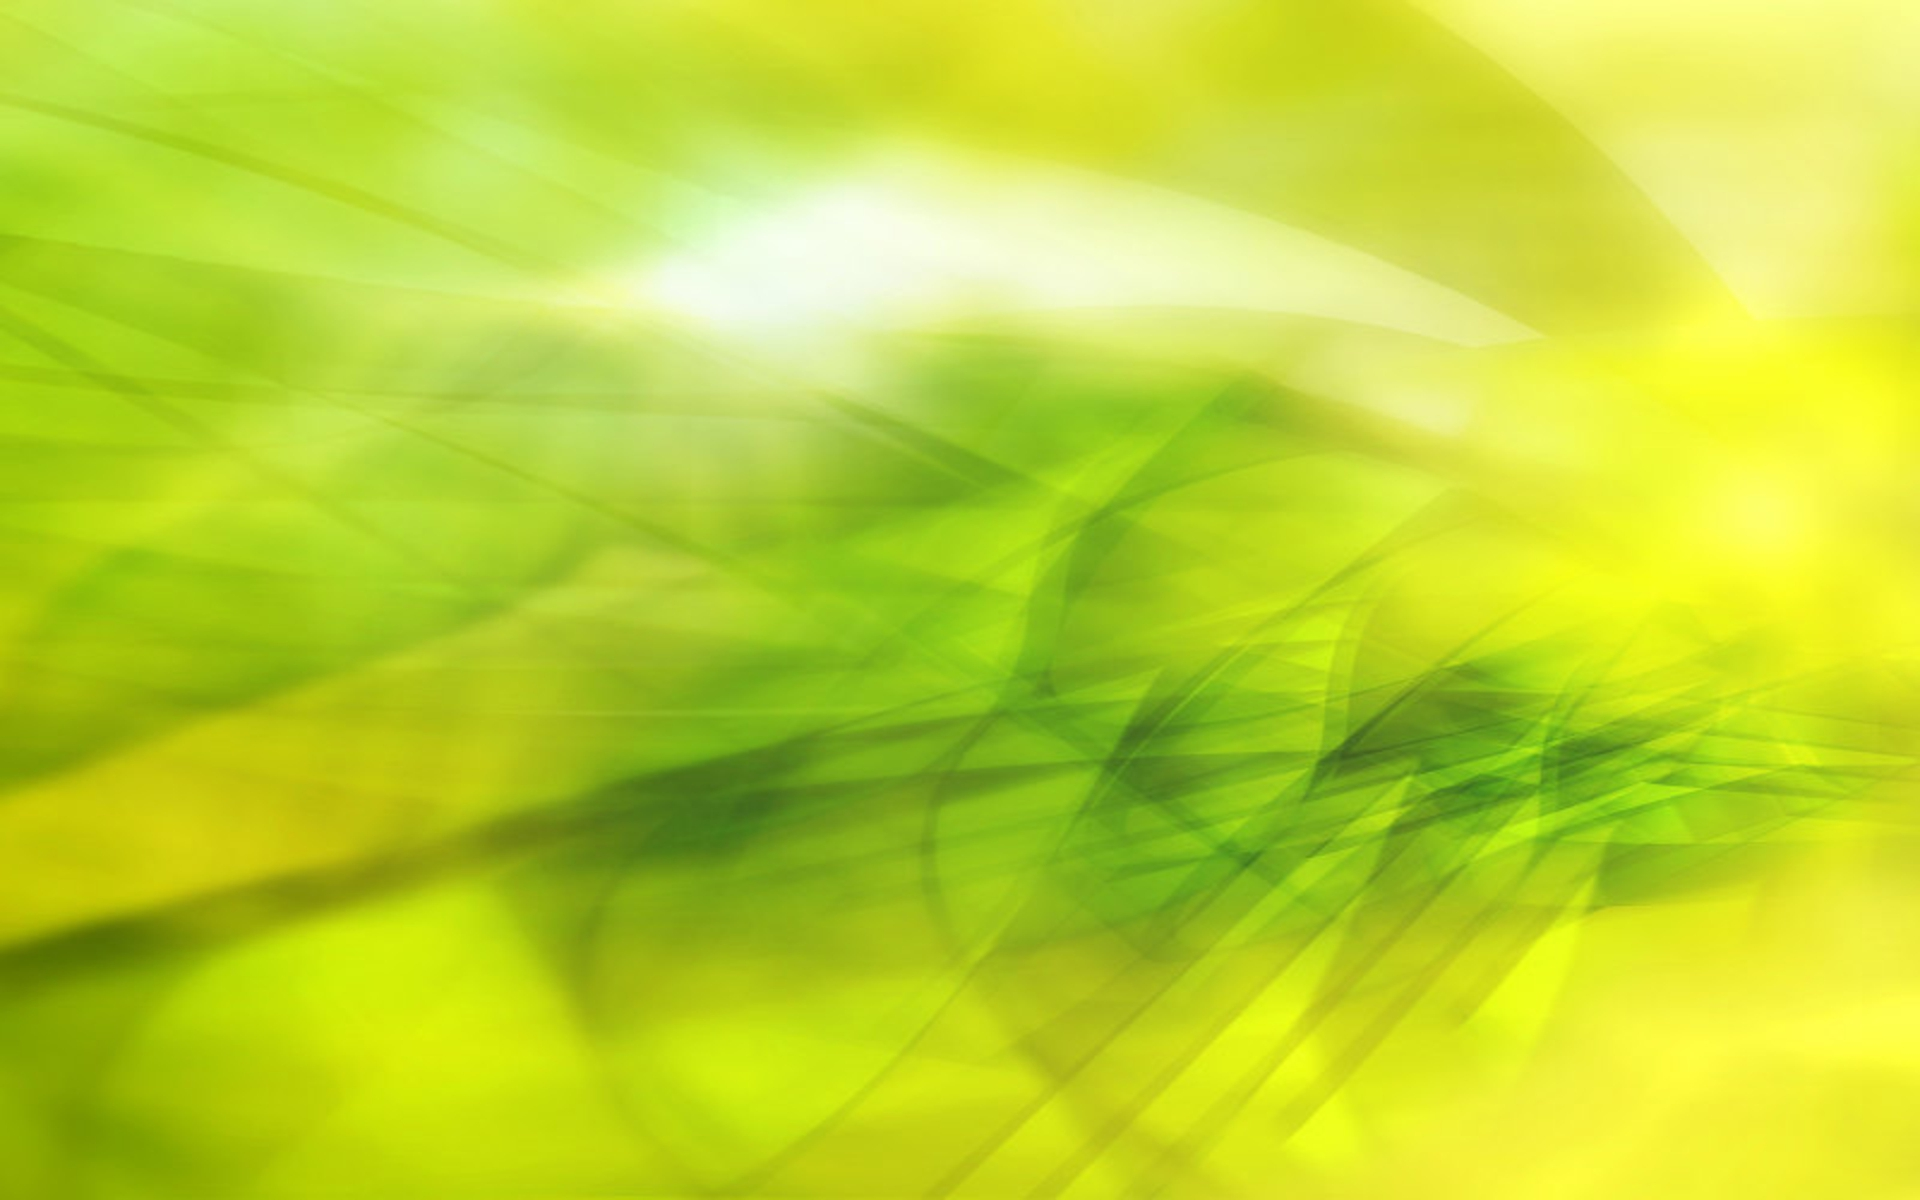 Free Green Free Free Abstract Wallpaper Downloads Wallpaper